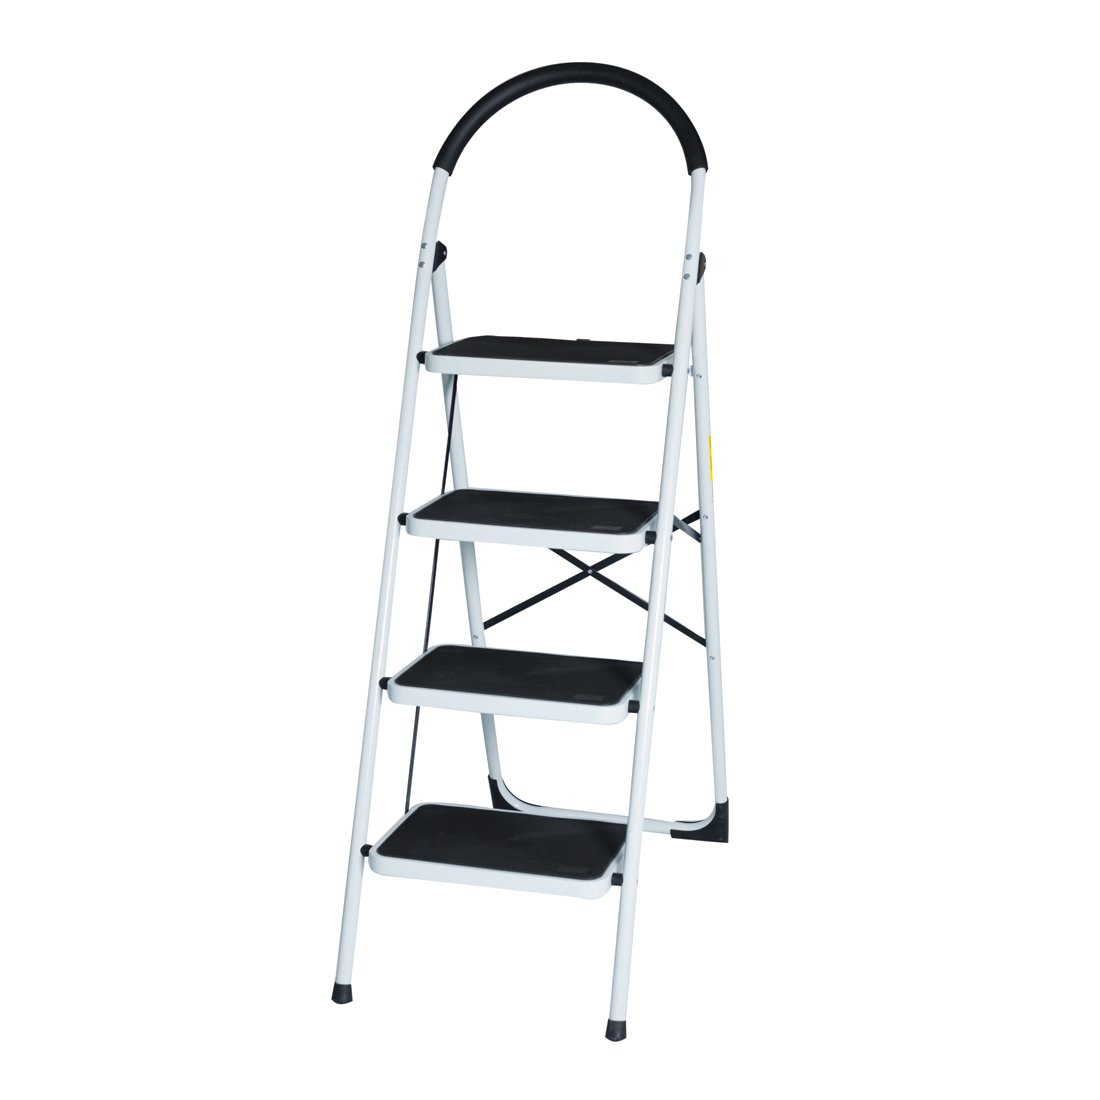 GOOD LIFE EN131 Folding 4 Step Ladder Home Depot Steel Step Ladders Lightweight 300 lb Capacity with Hand Grip Anti-slip and Wide Pedal HMI094